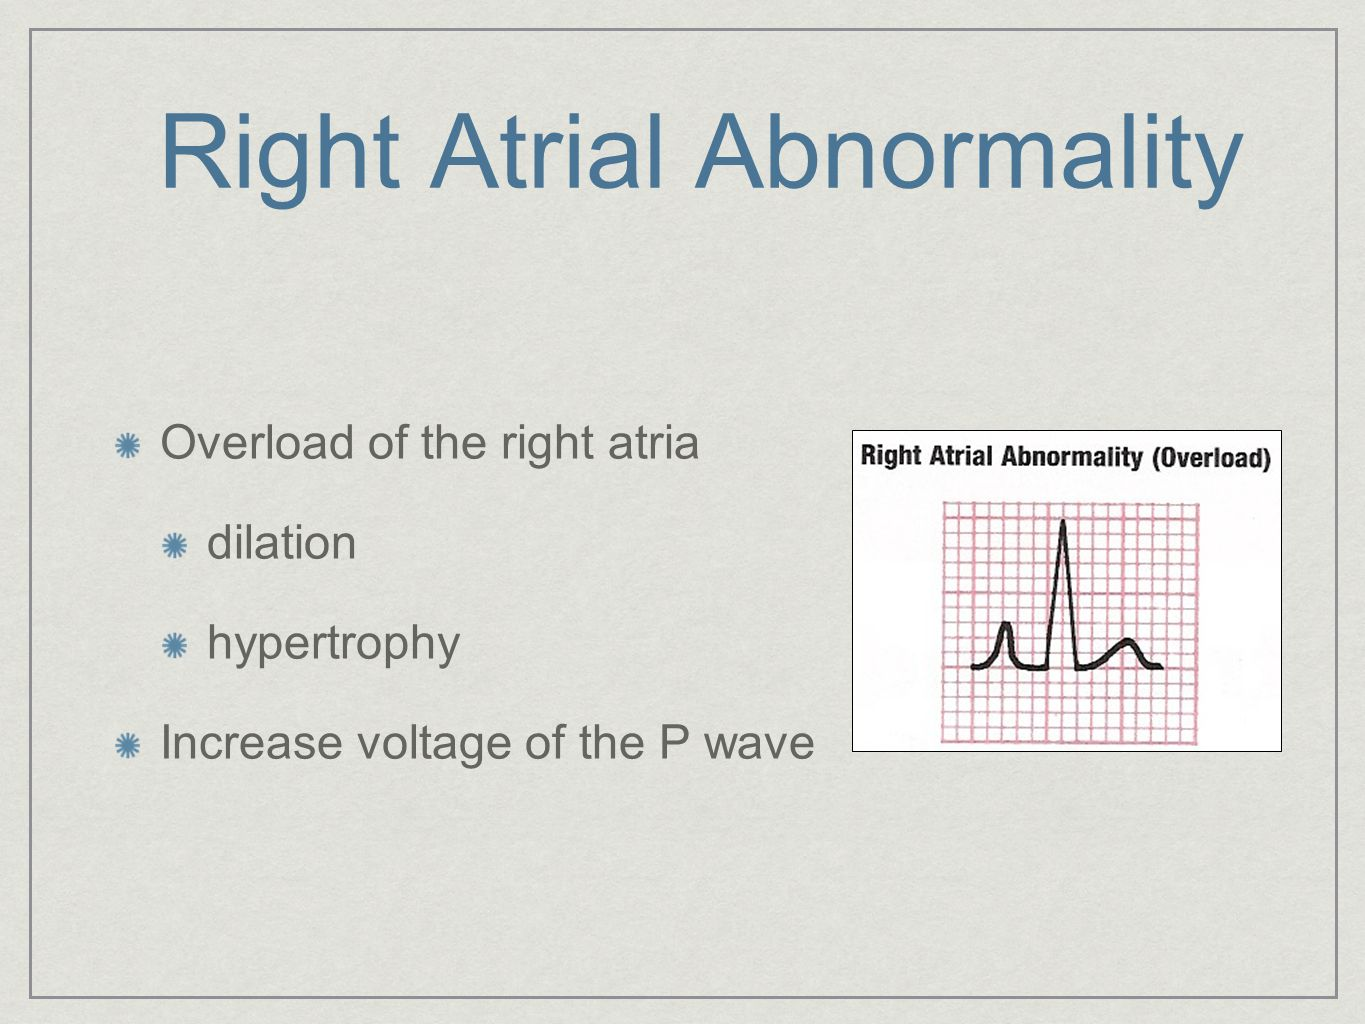 Right Atrial Abnormality